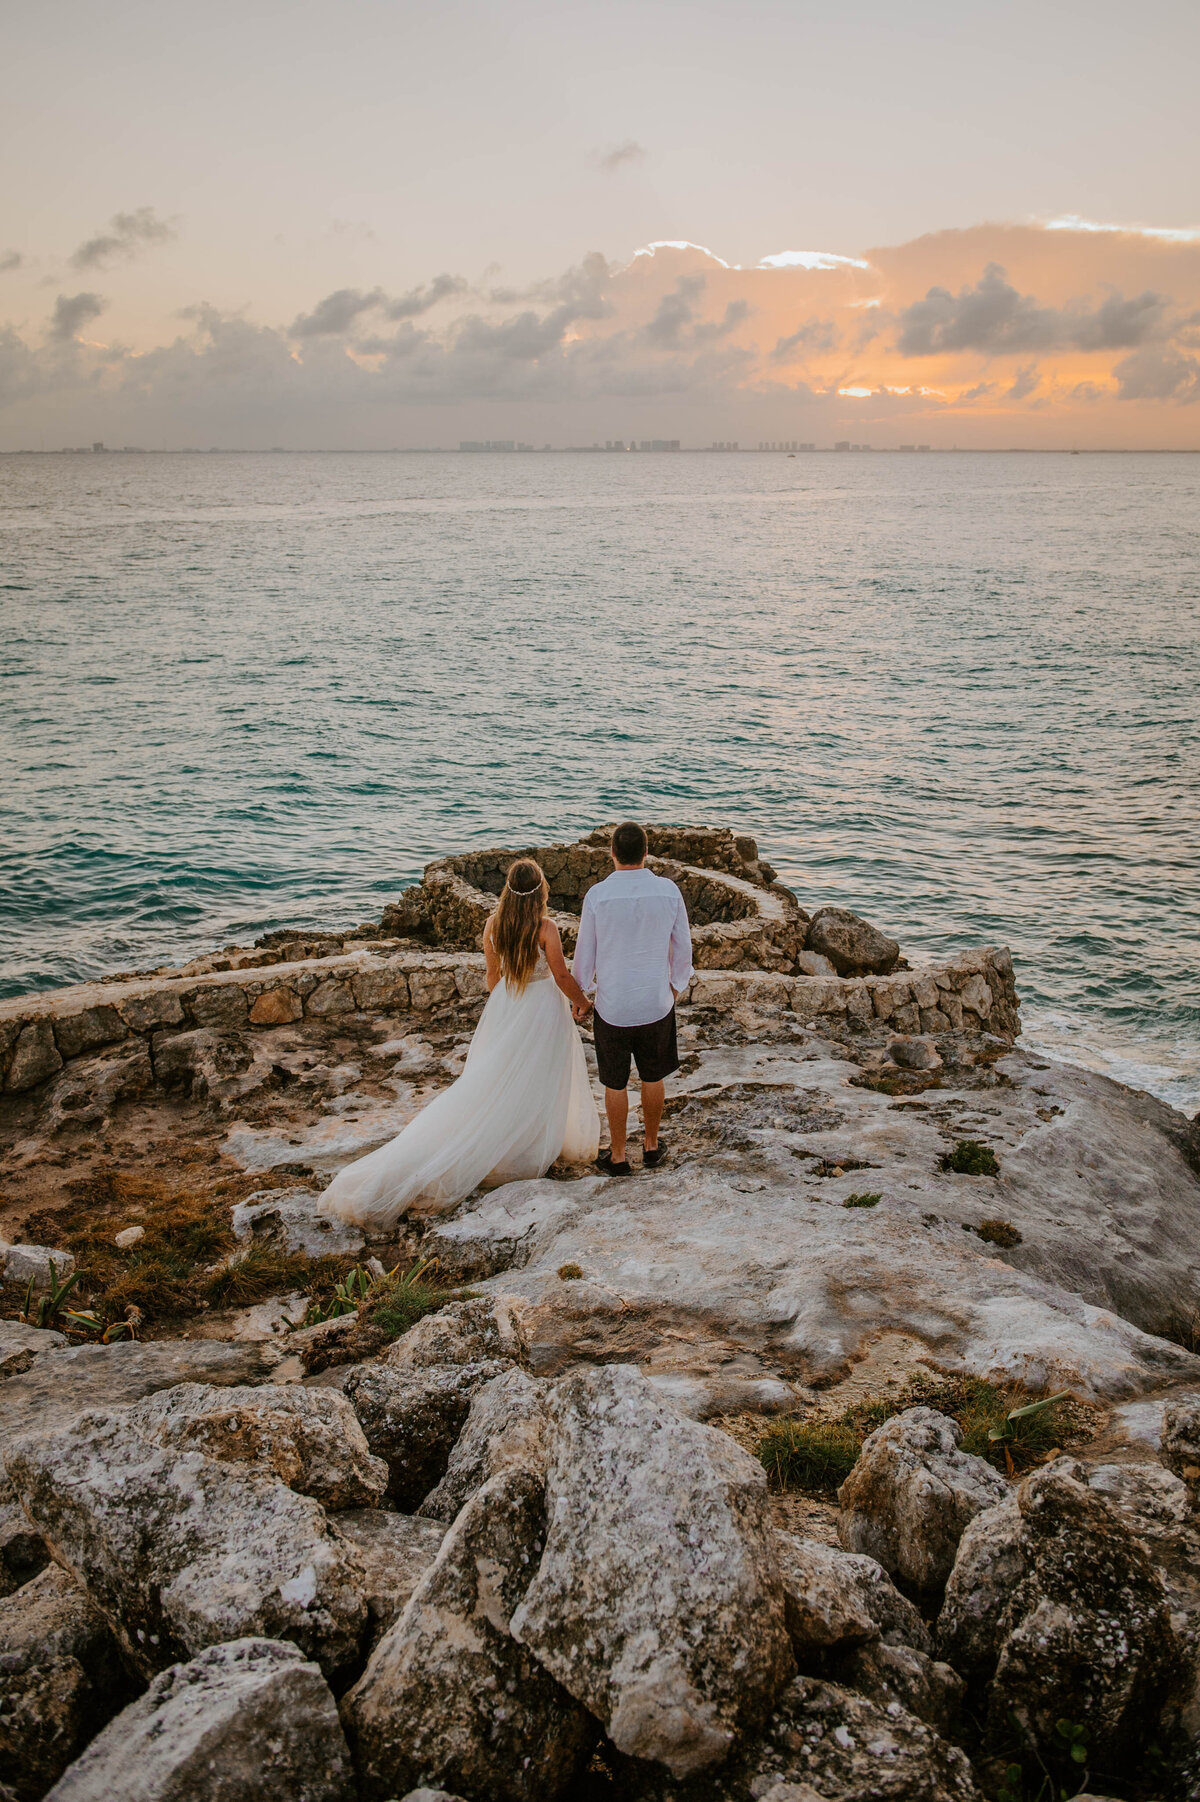 isla-mujeres-wedding-photographer-guthrie-zama-mexico-tulum-cancun-beach-destination-3509